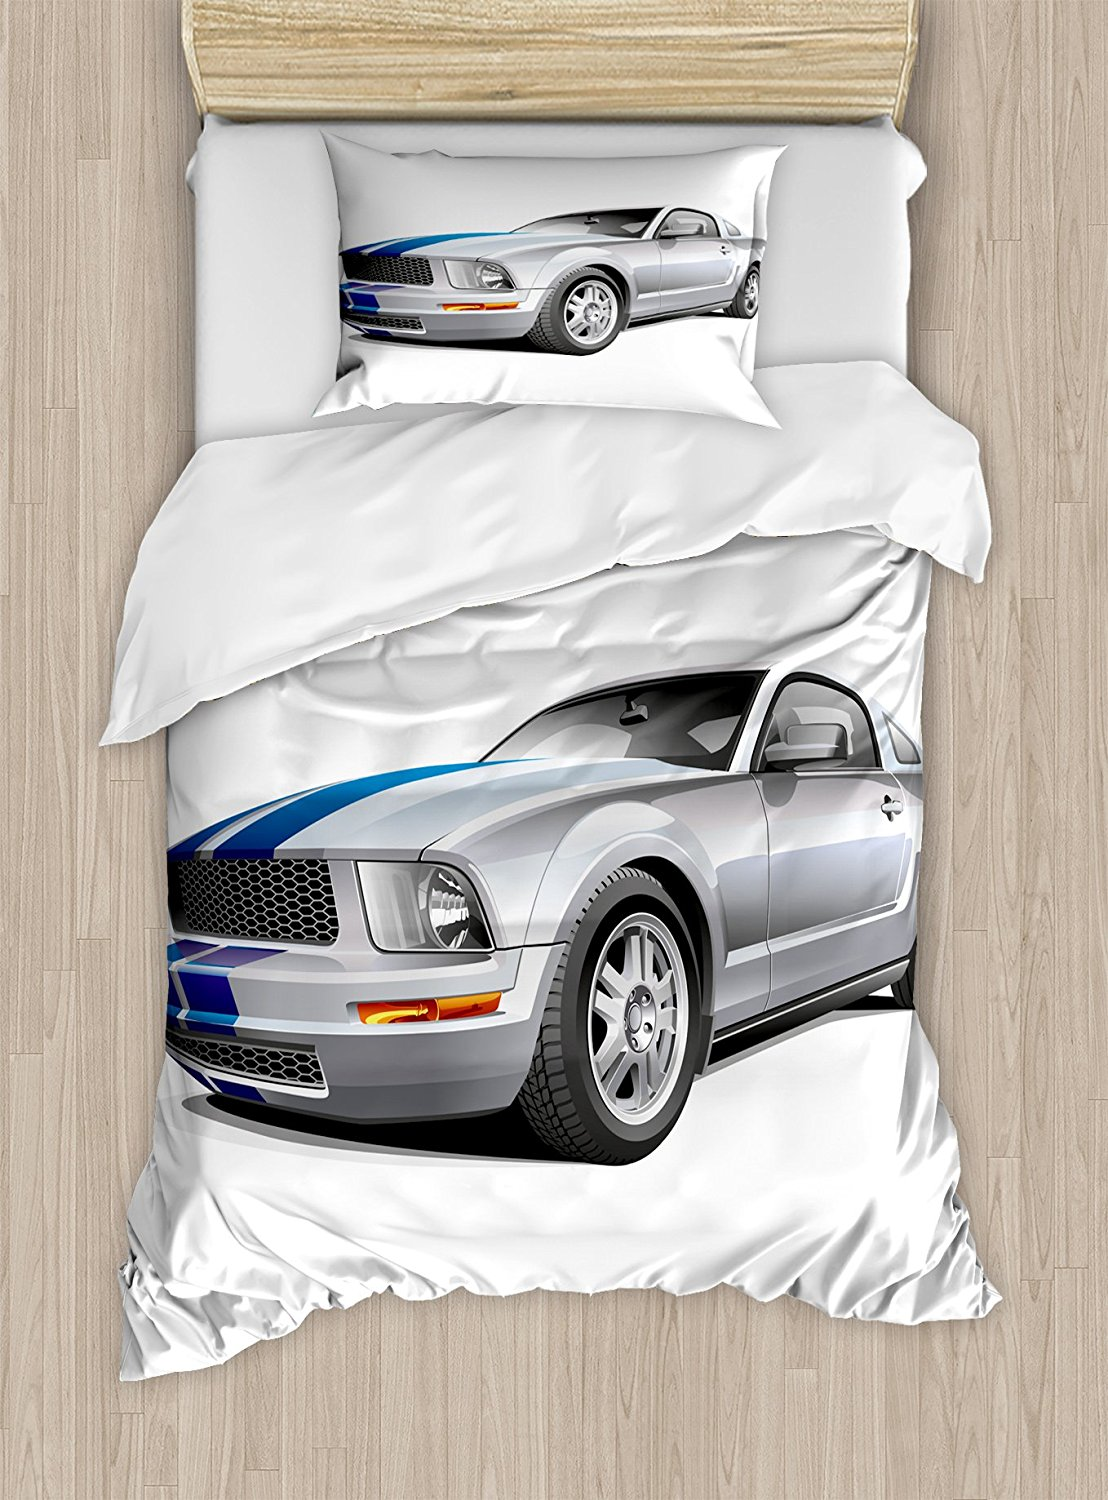 Teen Room Duvet Cover Set Modern Cool Car Automobile Fancy Speed Fast Vehicle Illustration Print Decorative 4 Piece Bedding Set